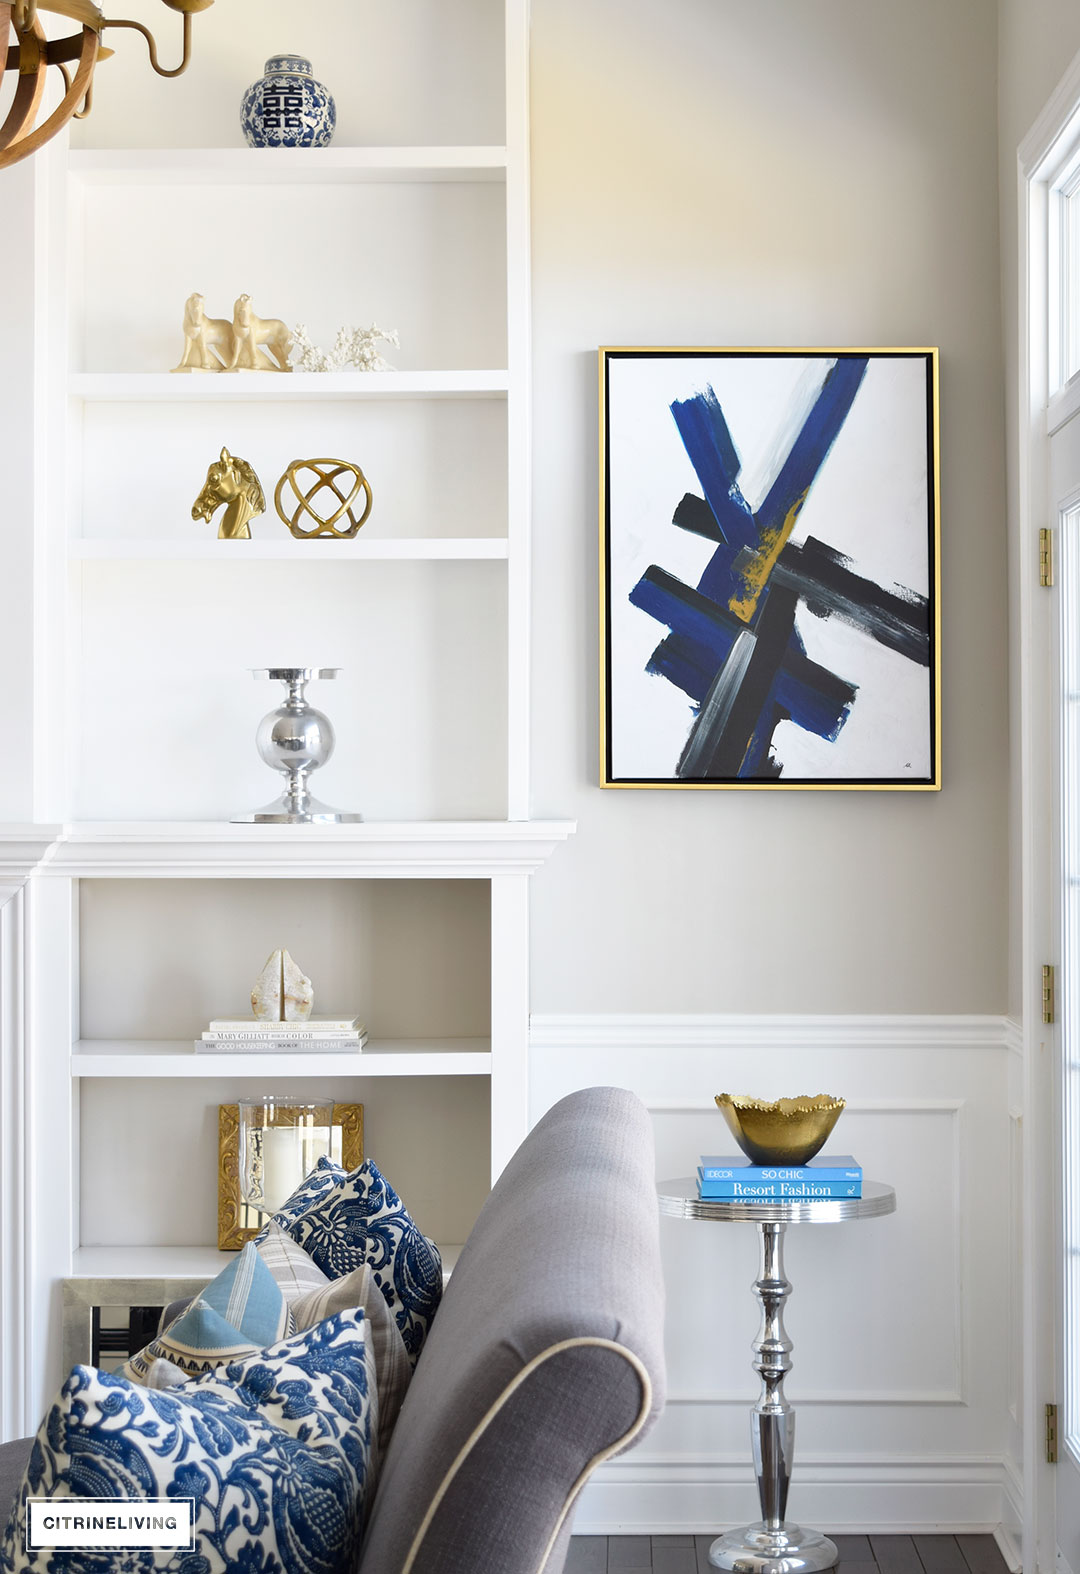 Make a strong statement in your home with bold, graphic modern art for a fresh, crisp approach.